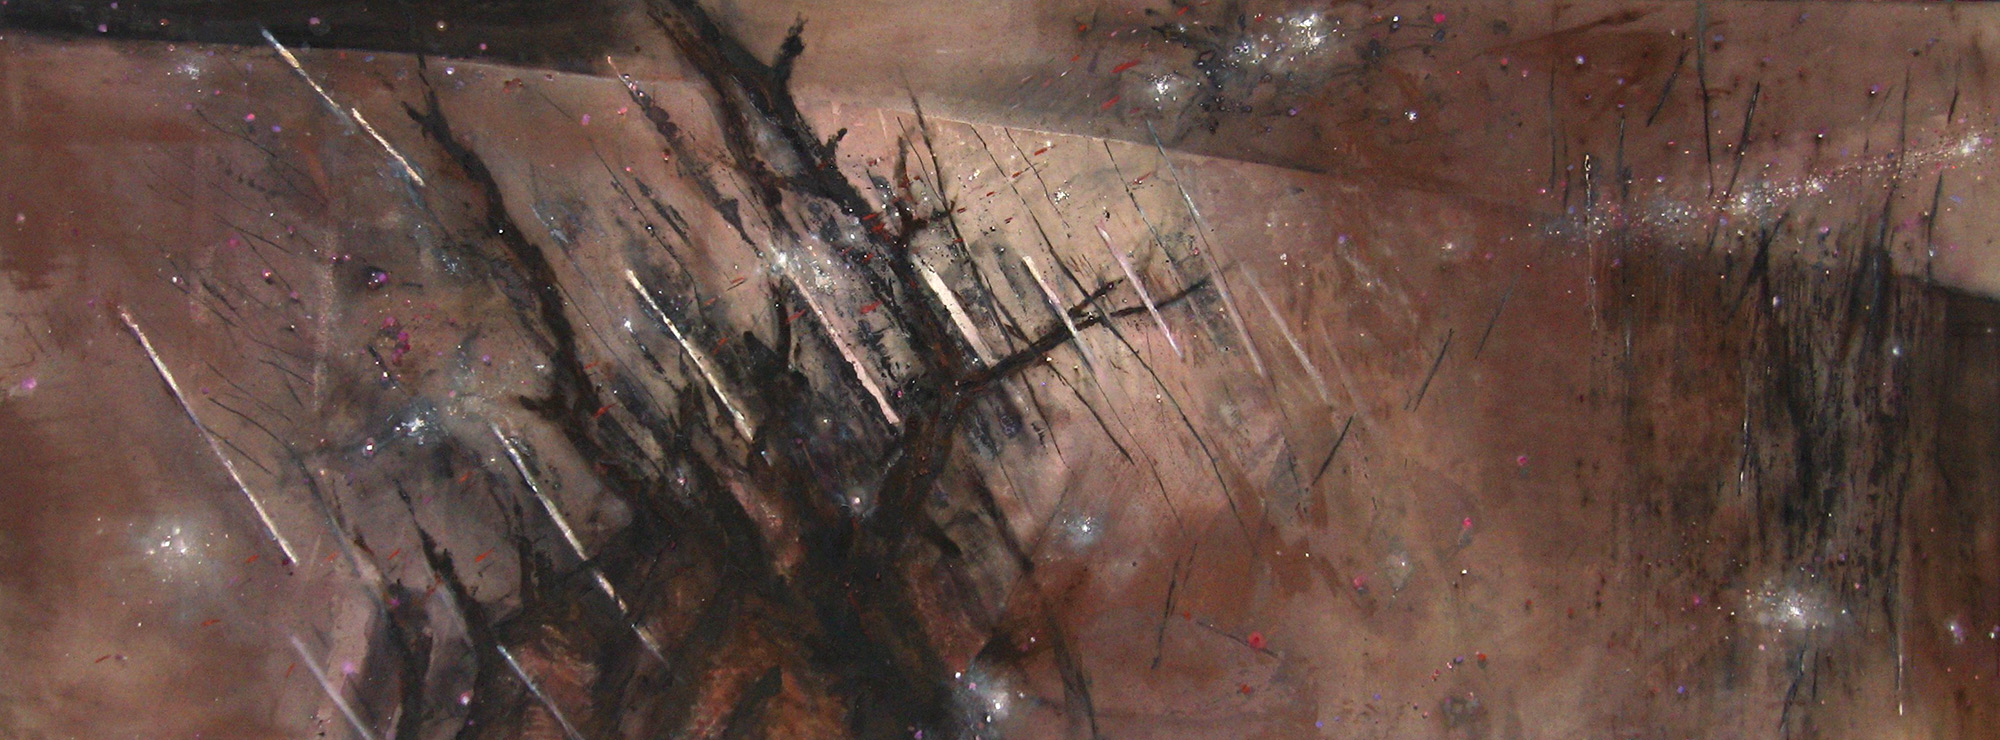 March Wind Seed and Rain  1984-2013, 173 x 448 cm